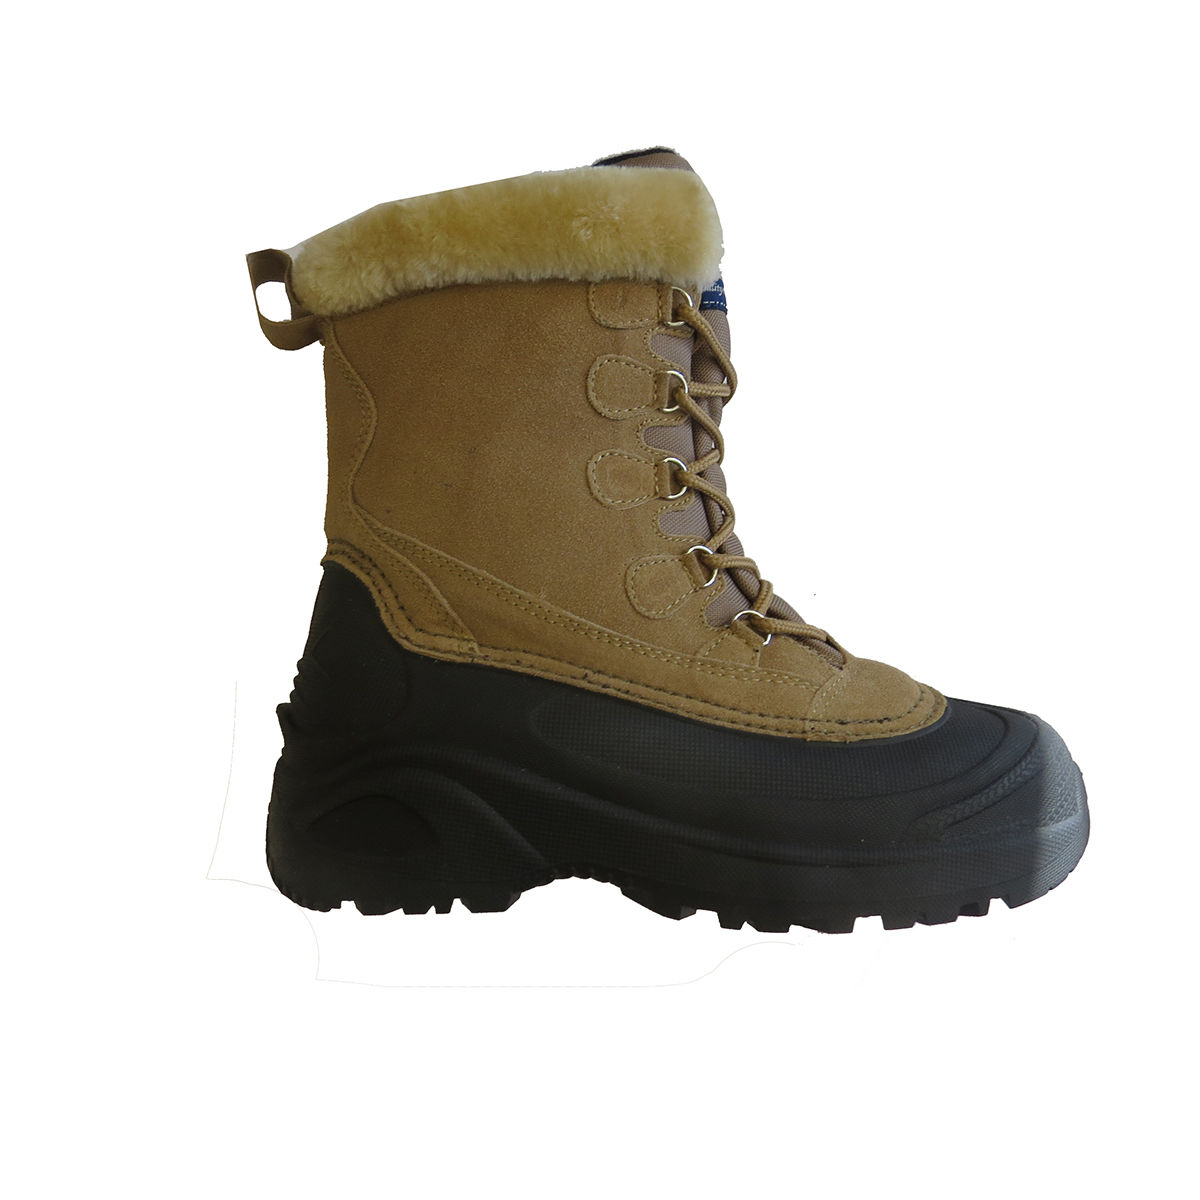 Smiths Glacier Womens Winter Boot